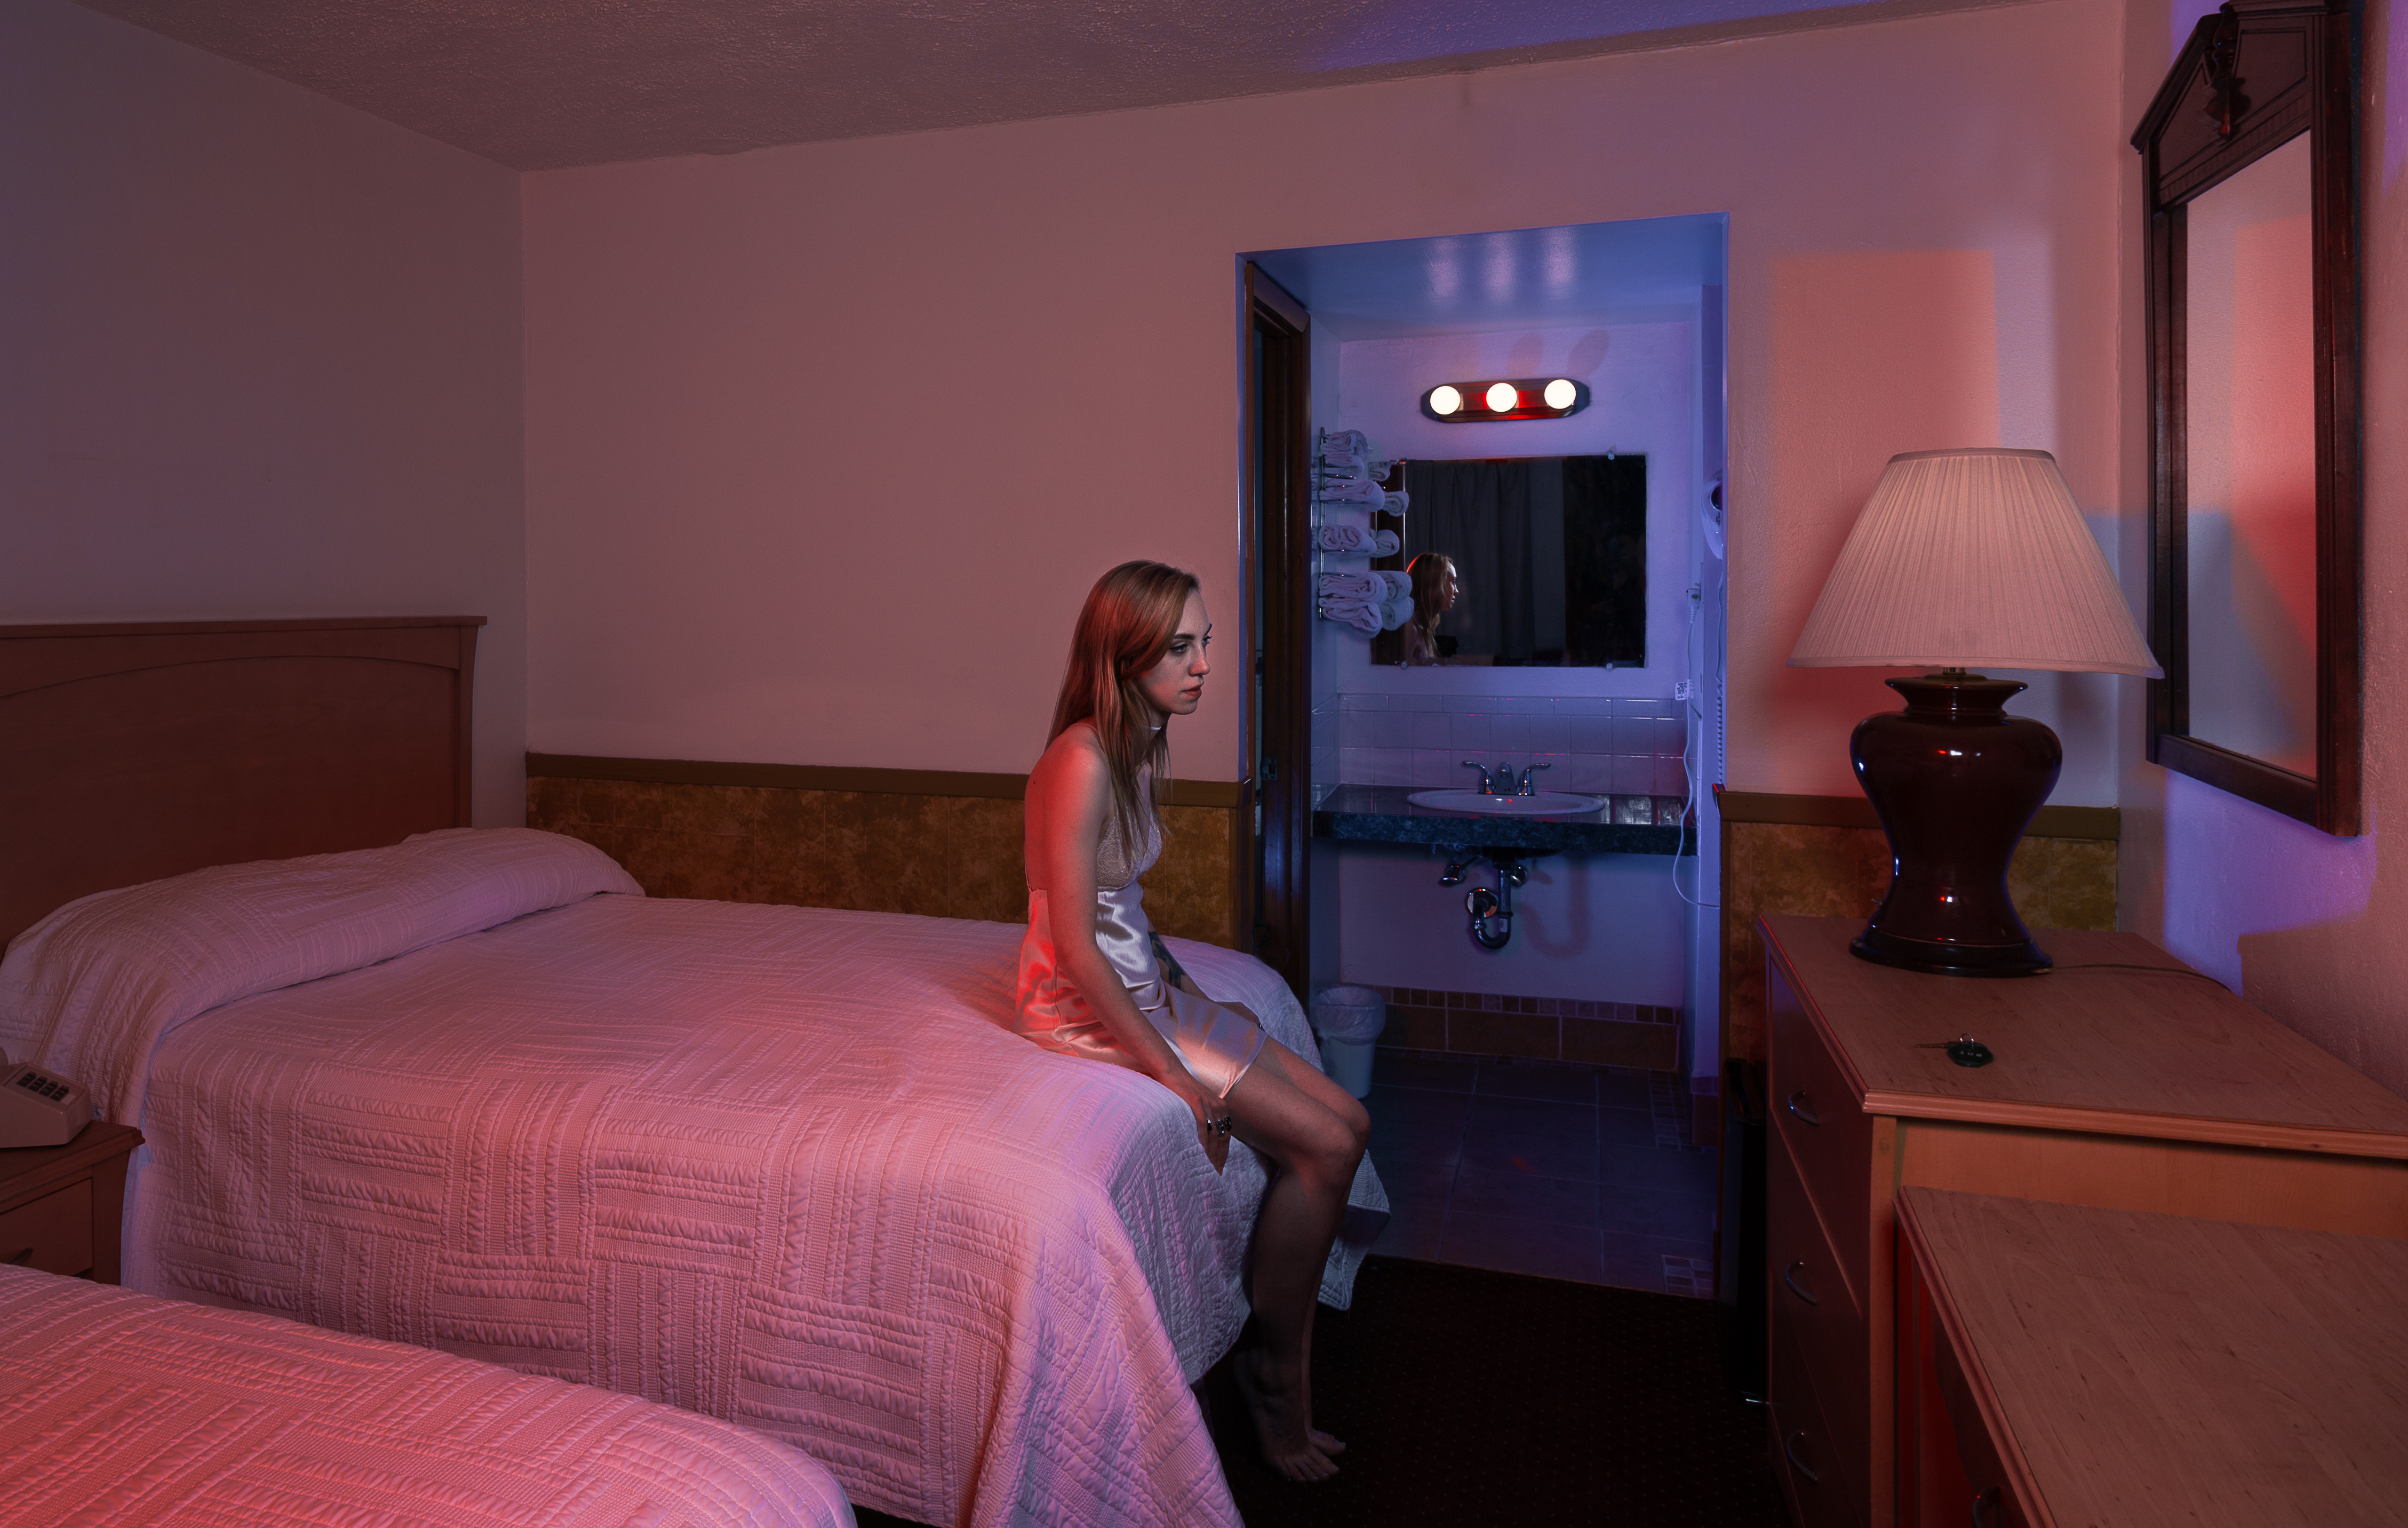 Photograph of female sitting on the edge of a bed in a motel room